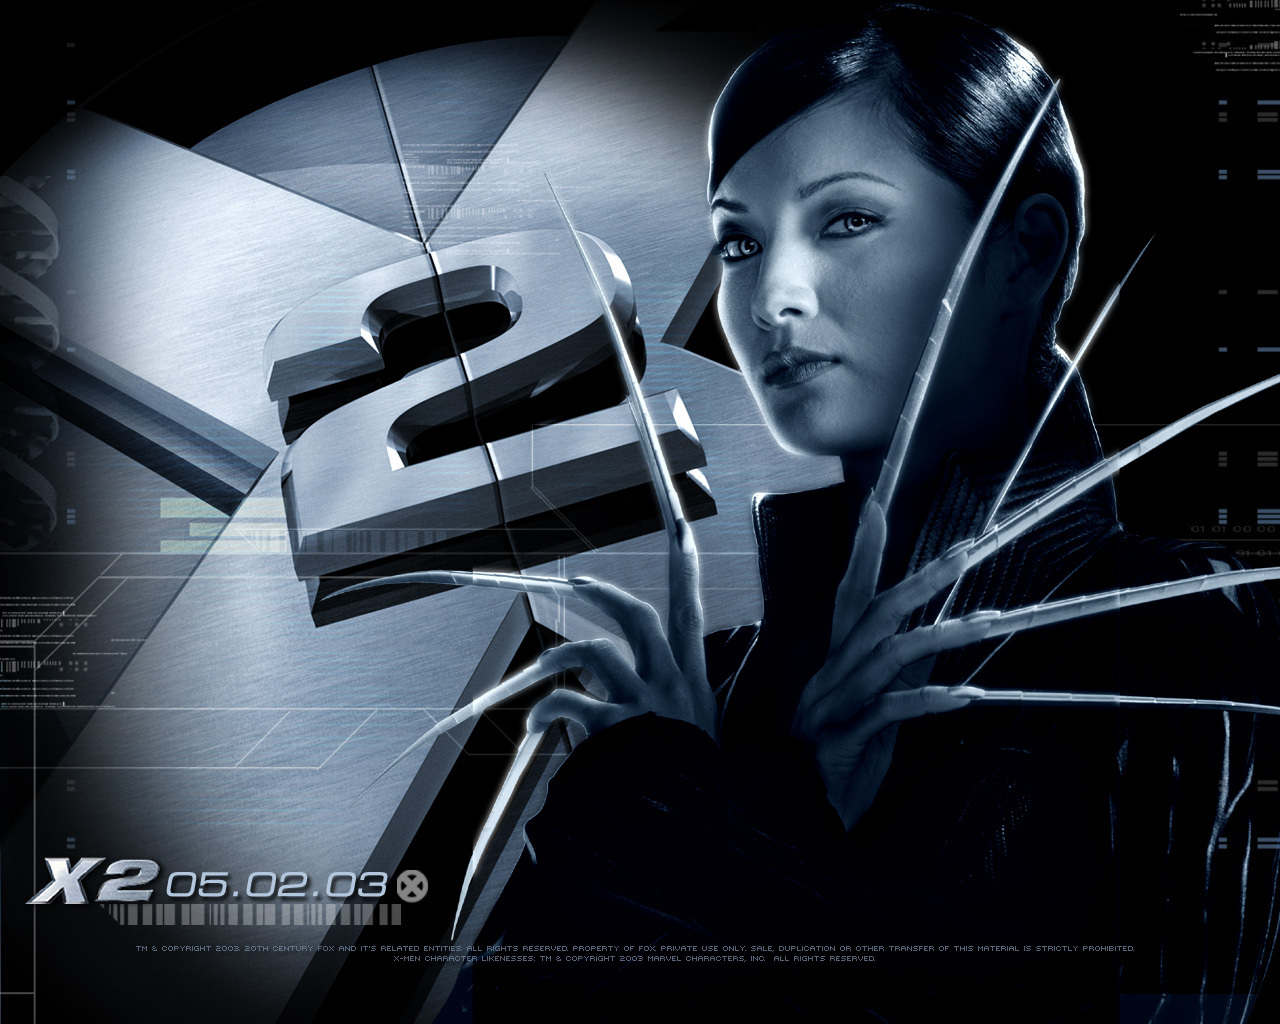 X2 wallpapers   X men THE MOVIE Wallpaper 6889384 1280x1024